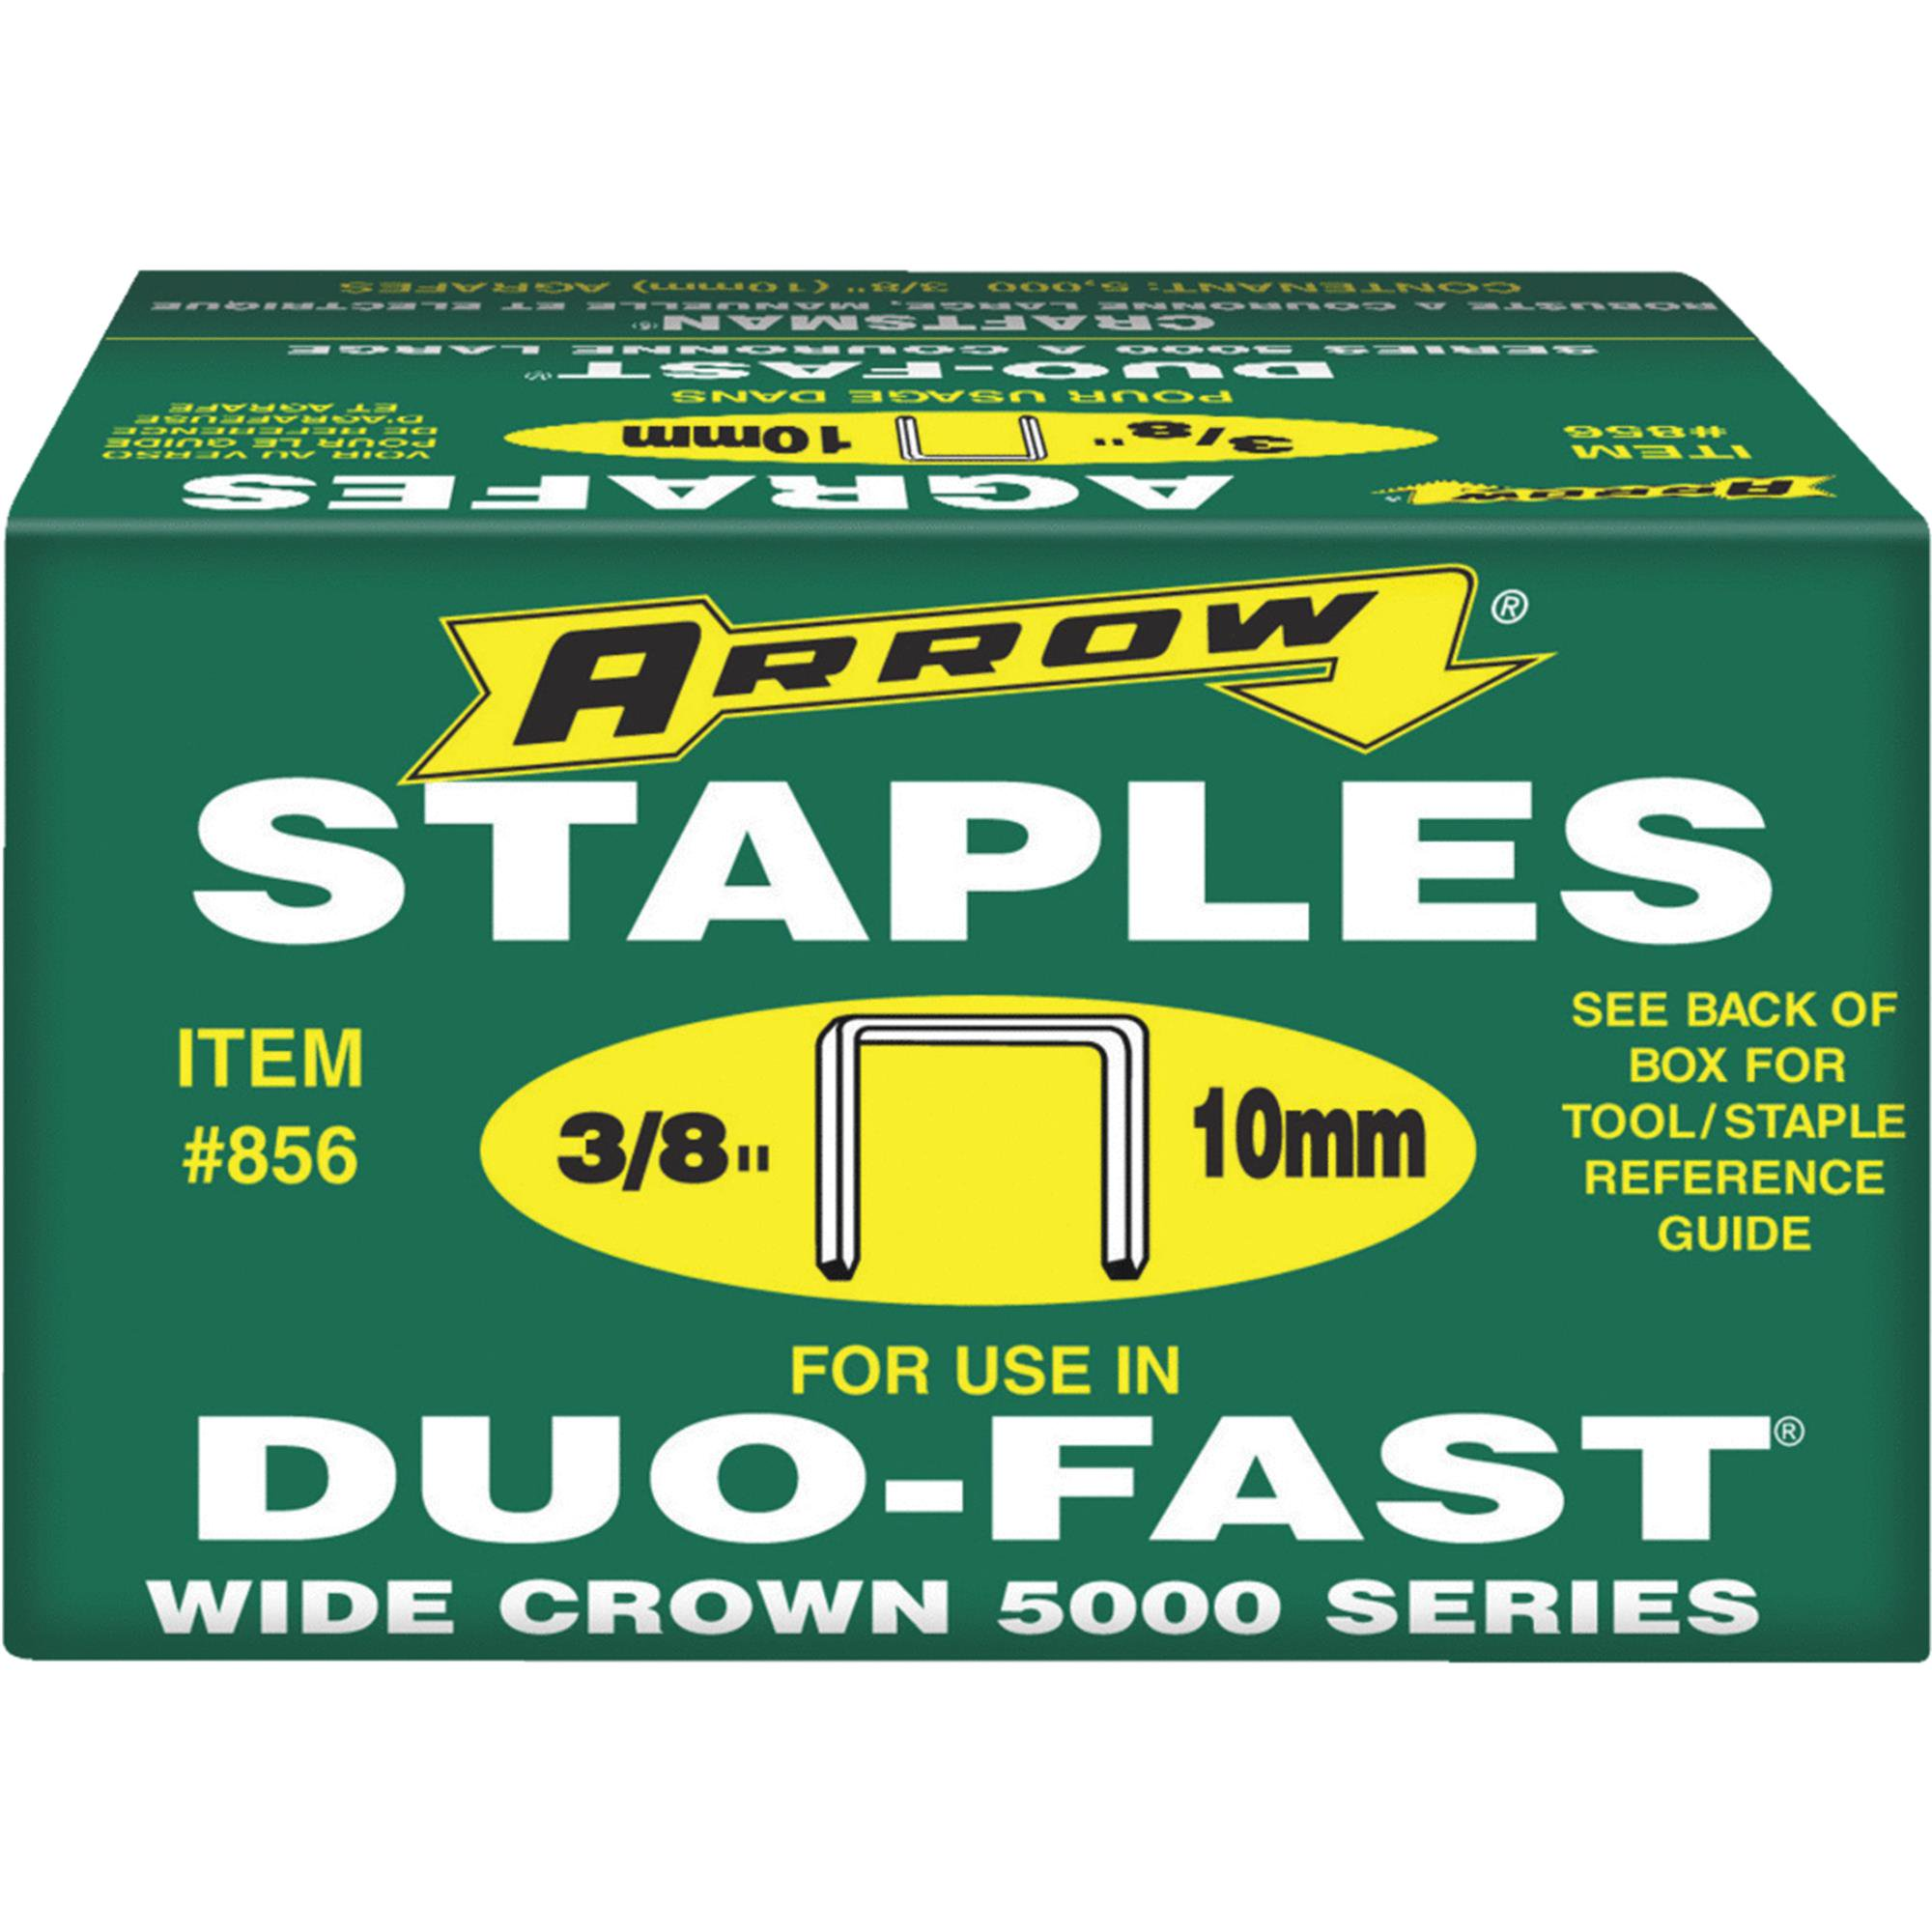 "Arrow Fastener 3/8"" Duo Fast Wide Crown 5000 Series Staples"